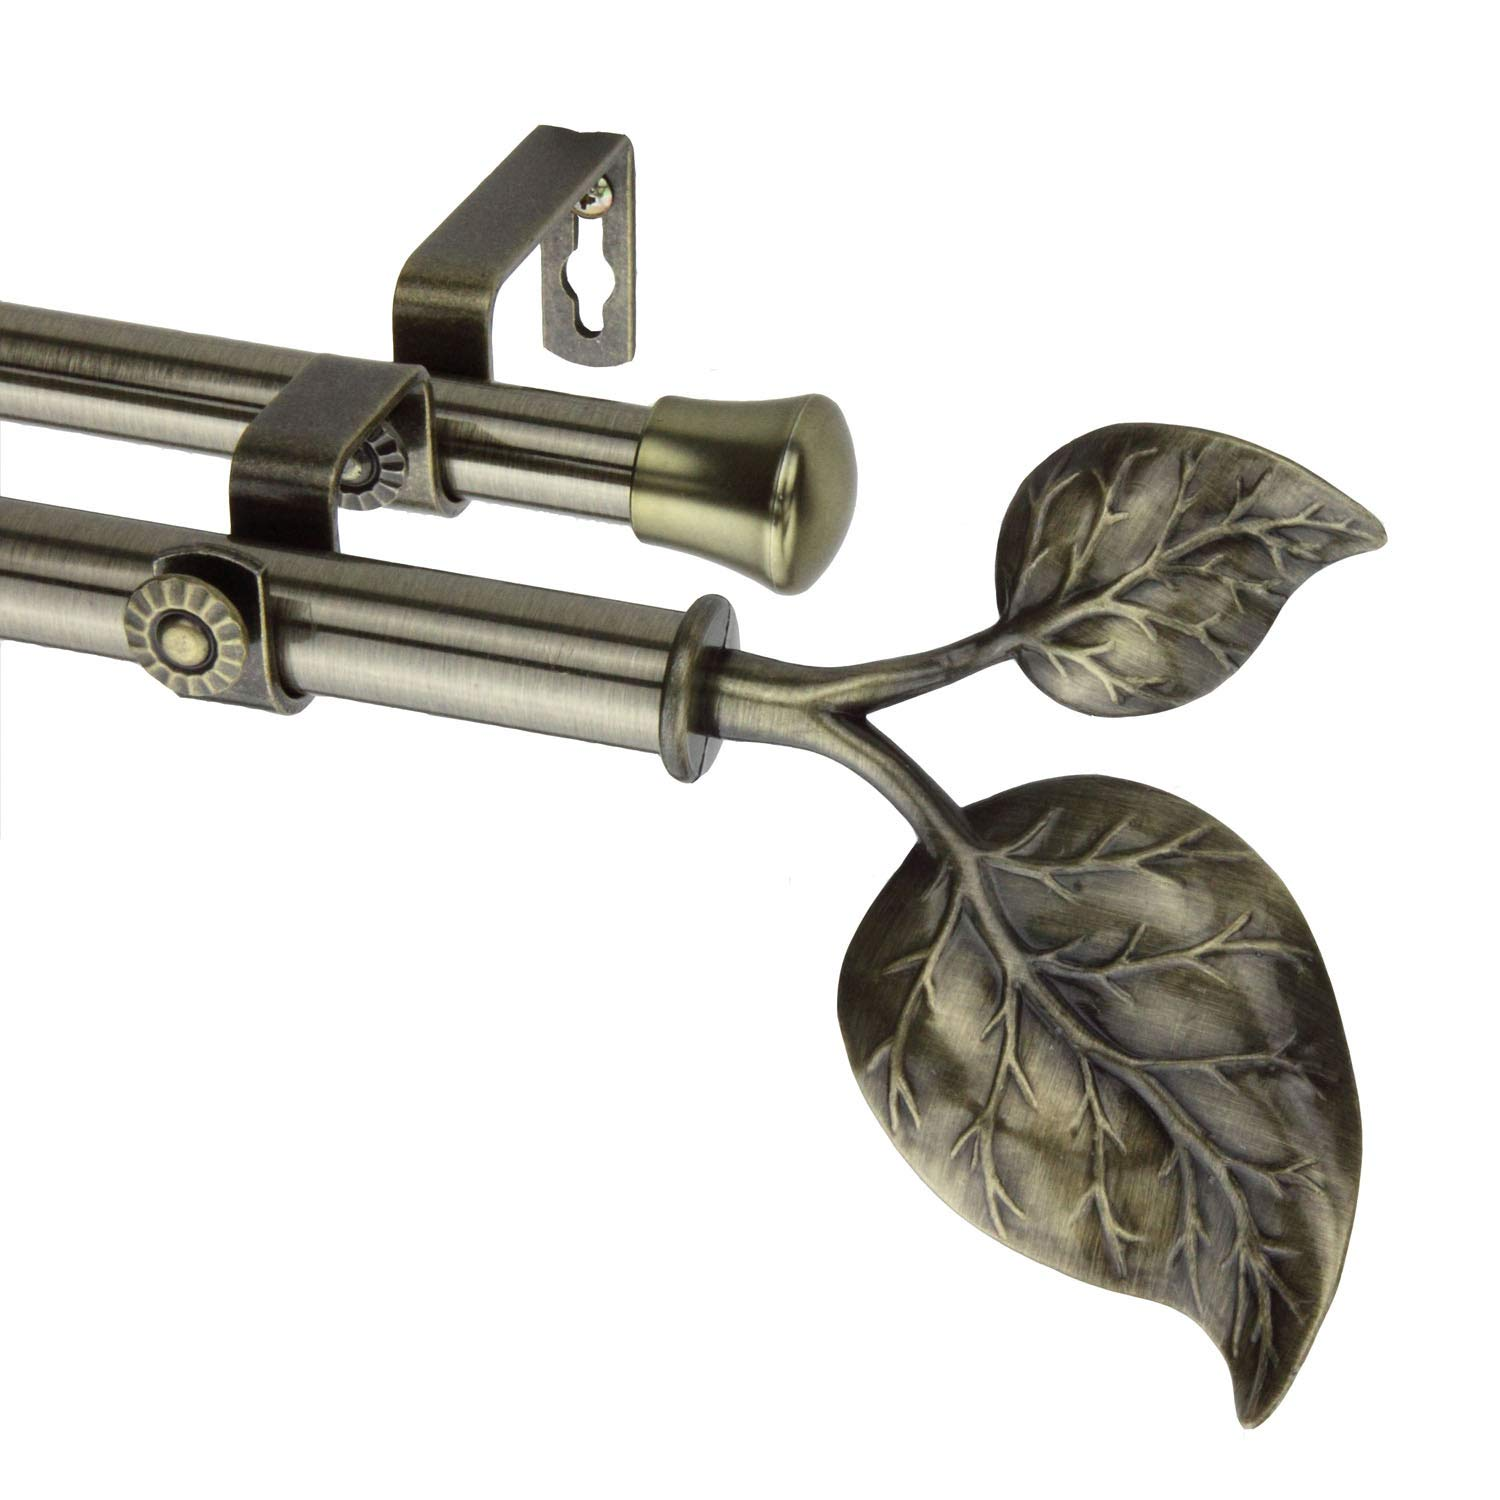 Modern Ivy Double Curtain Rod in Antique Brass Size 120-170